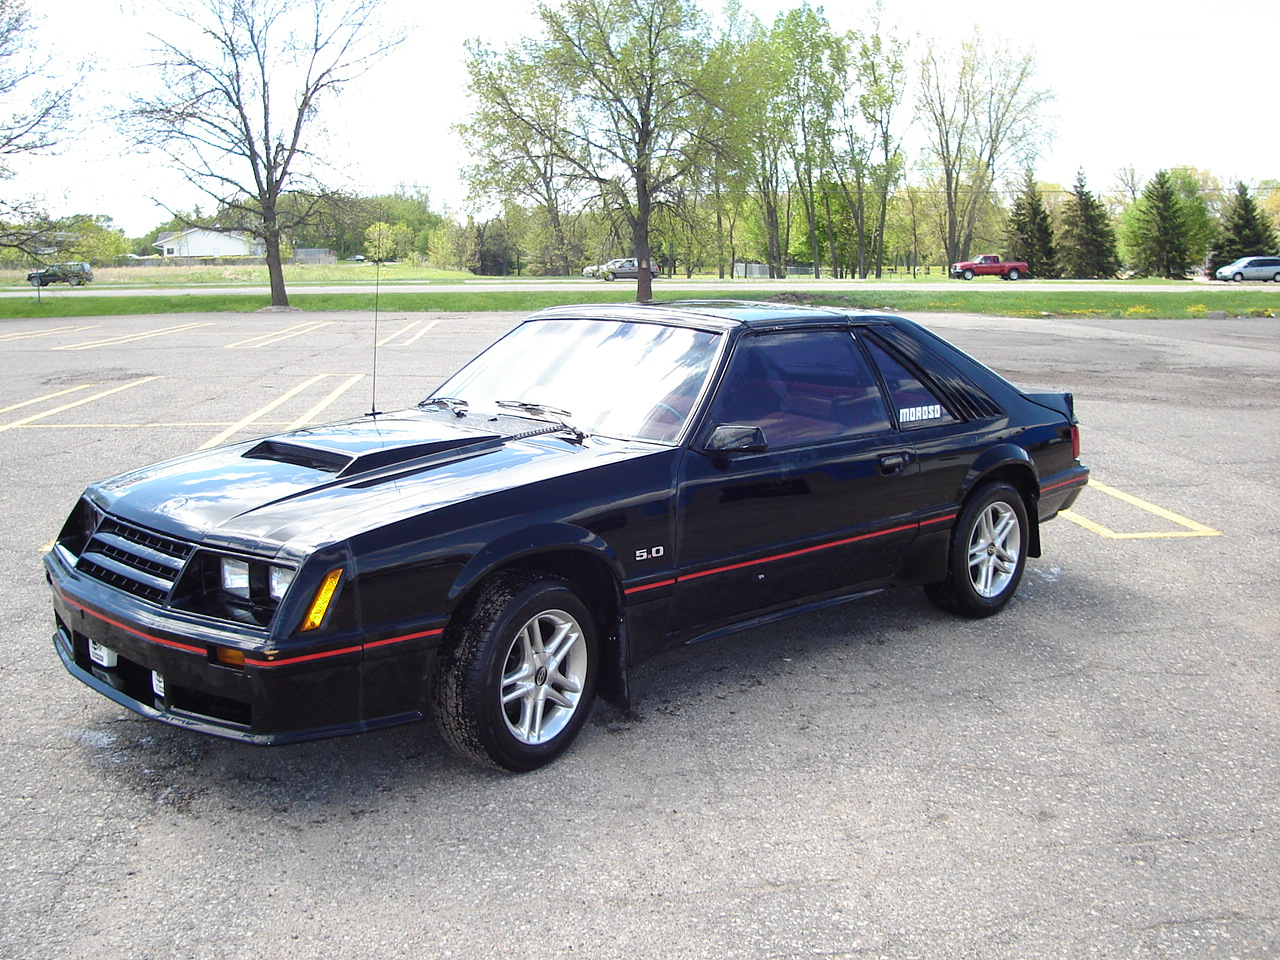 1982 Mustang Gt >> 1982 Ford Mustang GT | Car Wallpaper